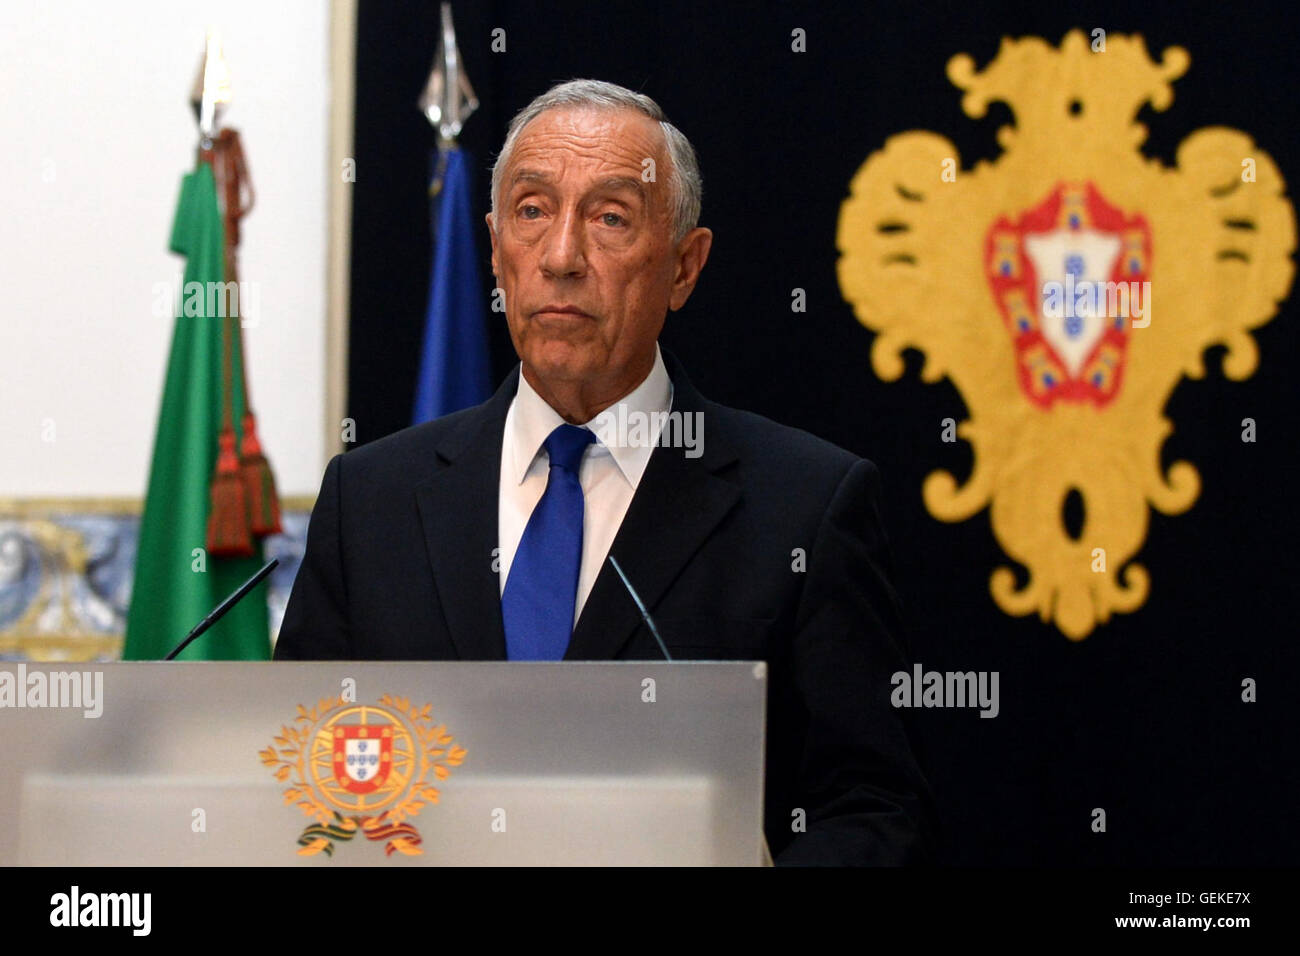 Lisbon, Portugal. 27th July, 2016. Portuguese President Marcelo Rebelo de Sousa delivers a speech at the Palace Stock Photo